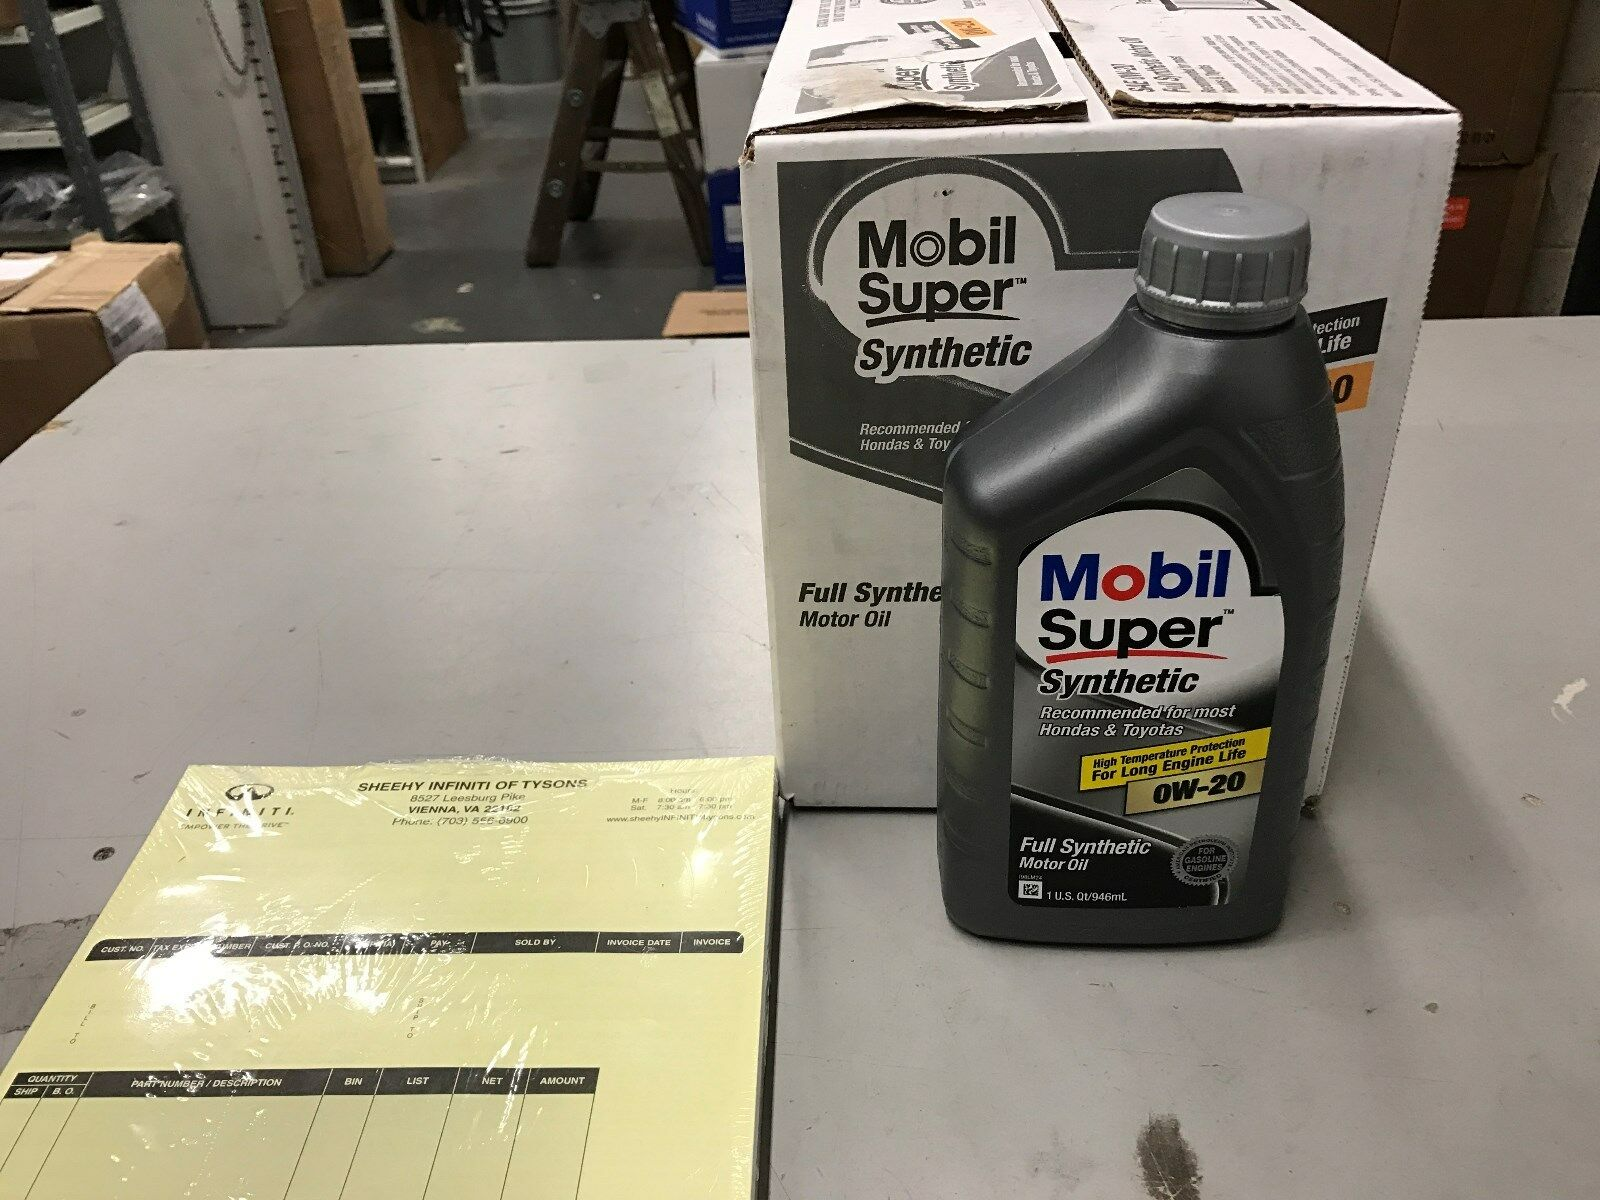 mobil super synthetic 0w 20 full synthetic motor oil case of 6 quarts new for sale in vienna. Black Bedroom Furniture Sets. Home Design Ideas